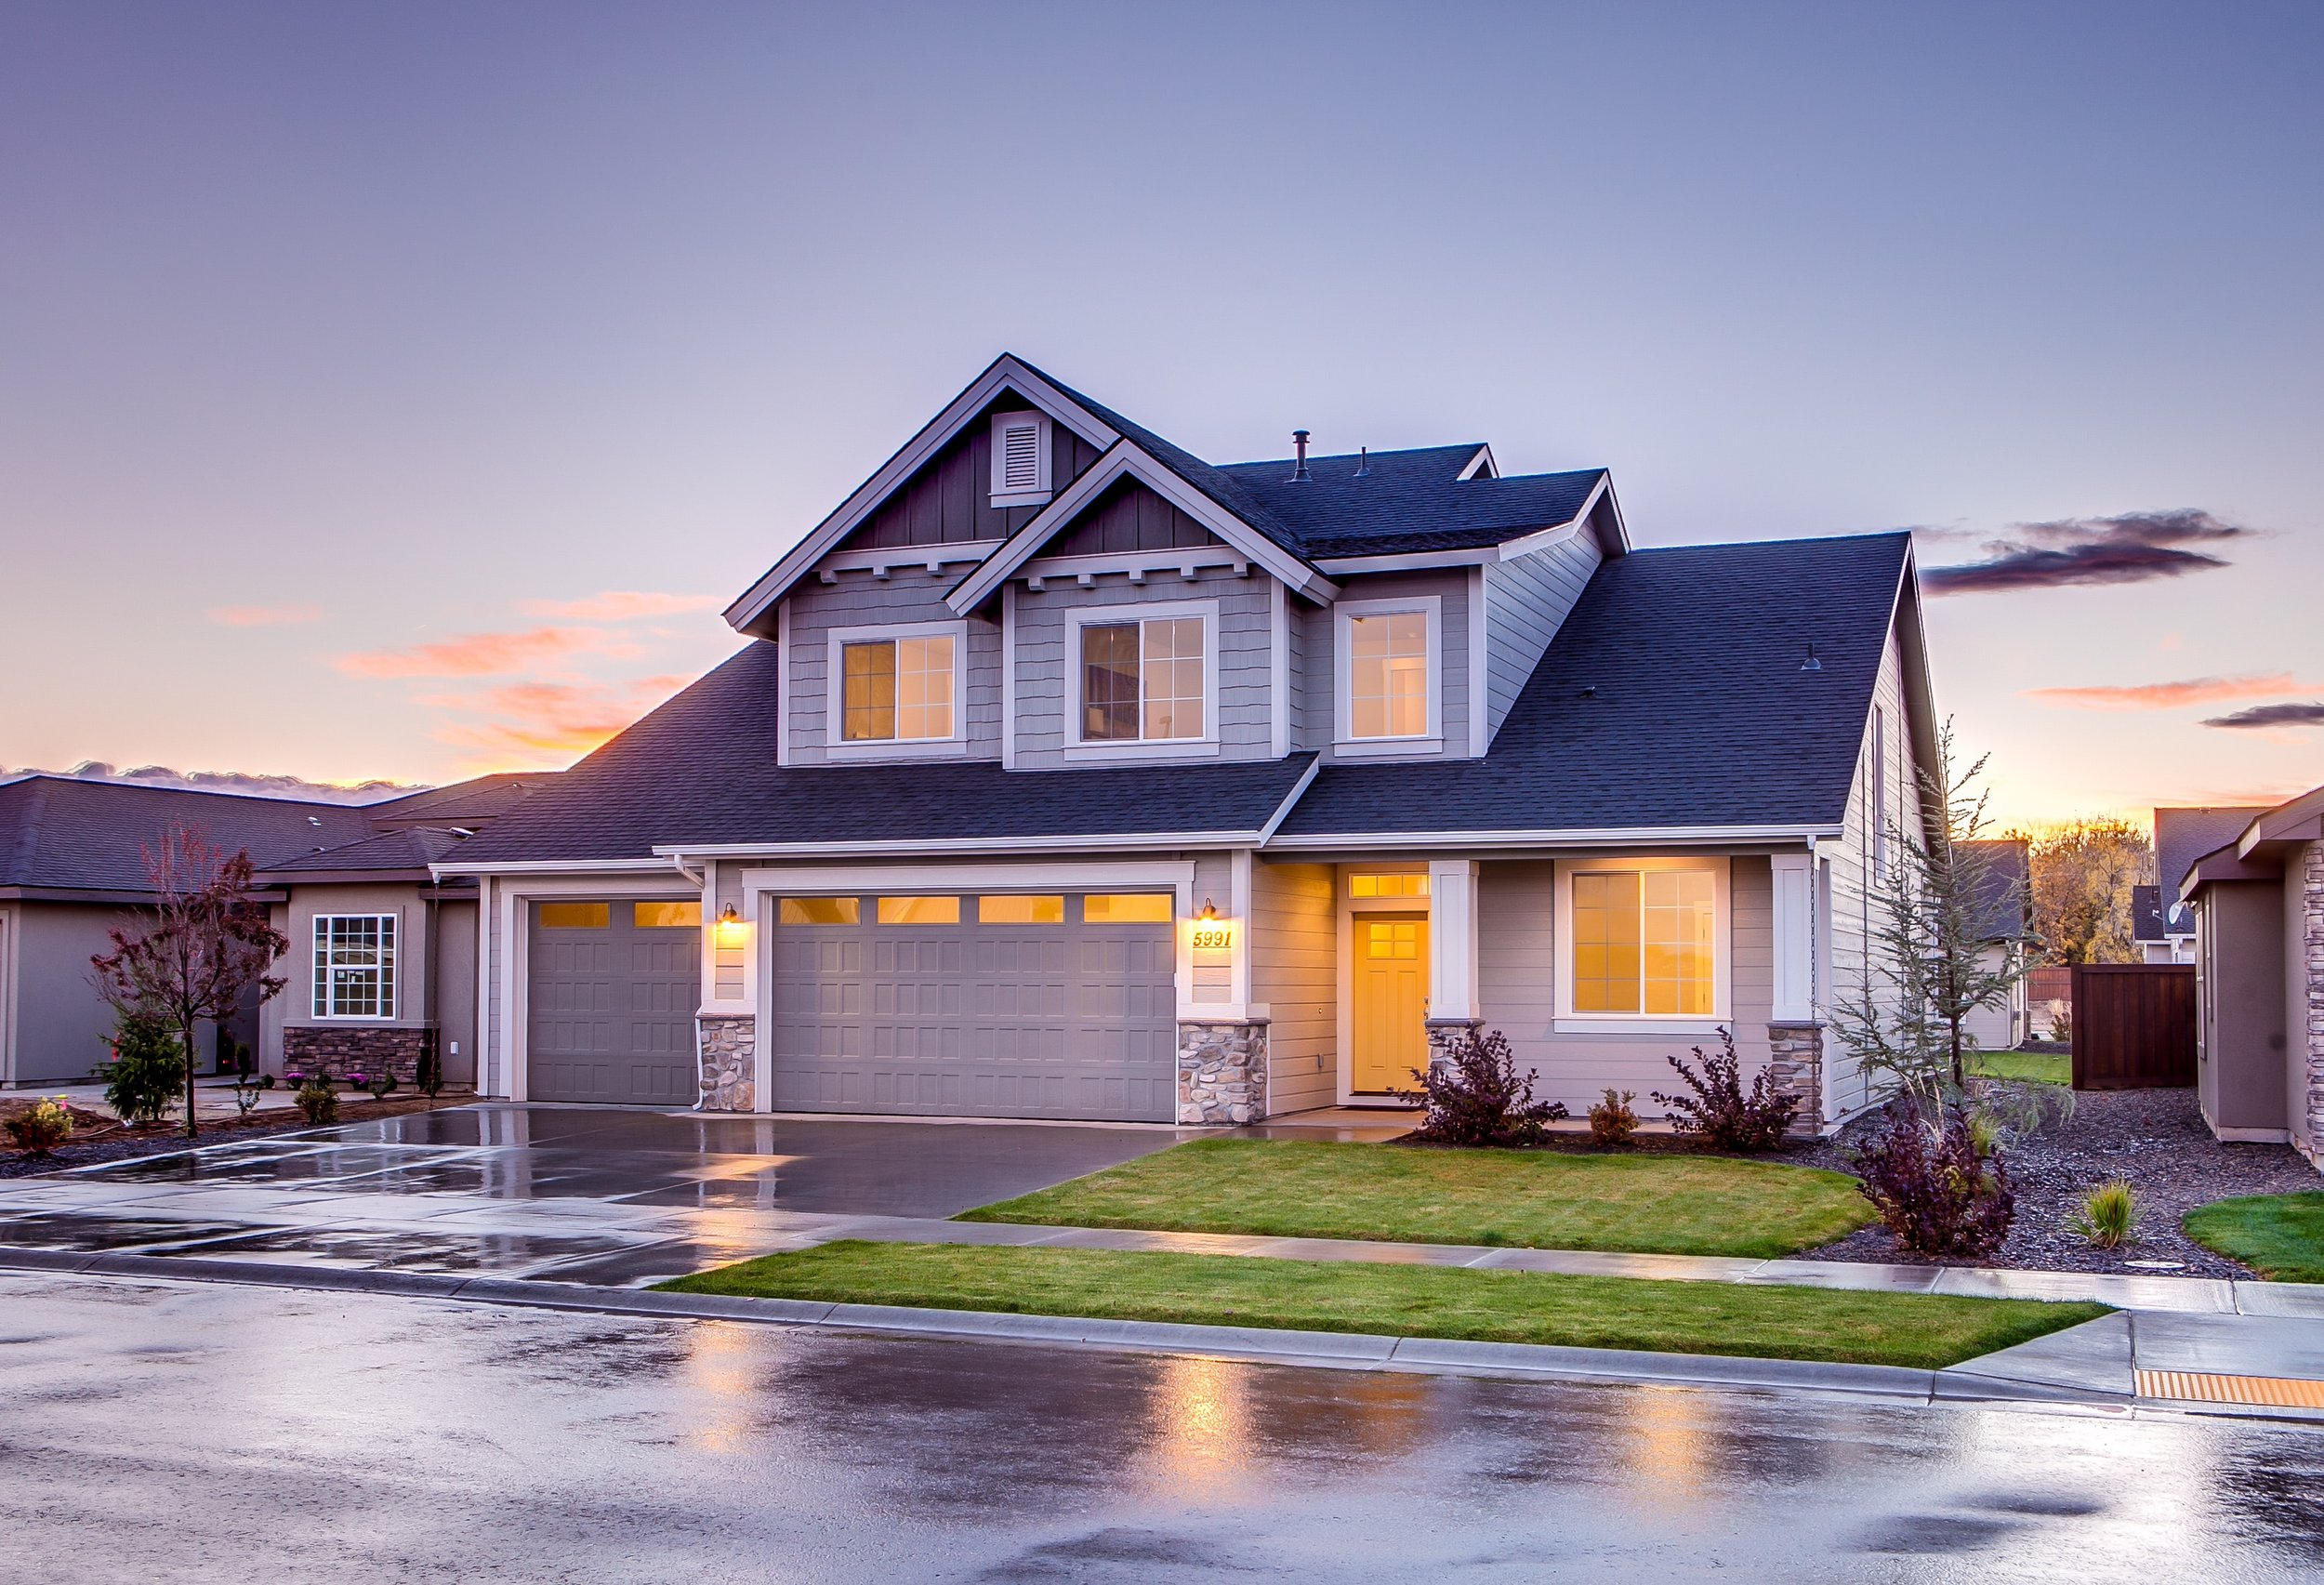 addition-exterior-renovation-architecture-building-driveway-186077.jpg